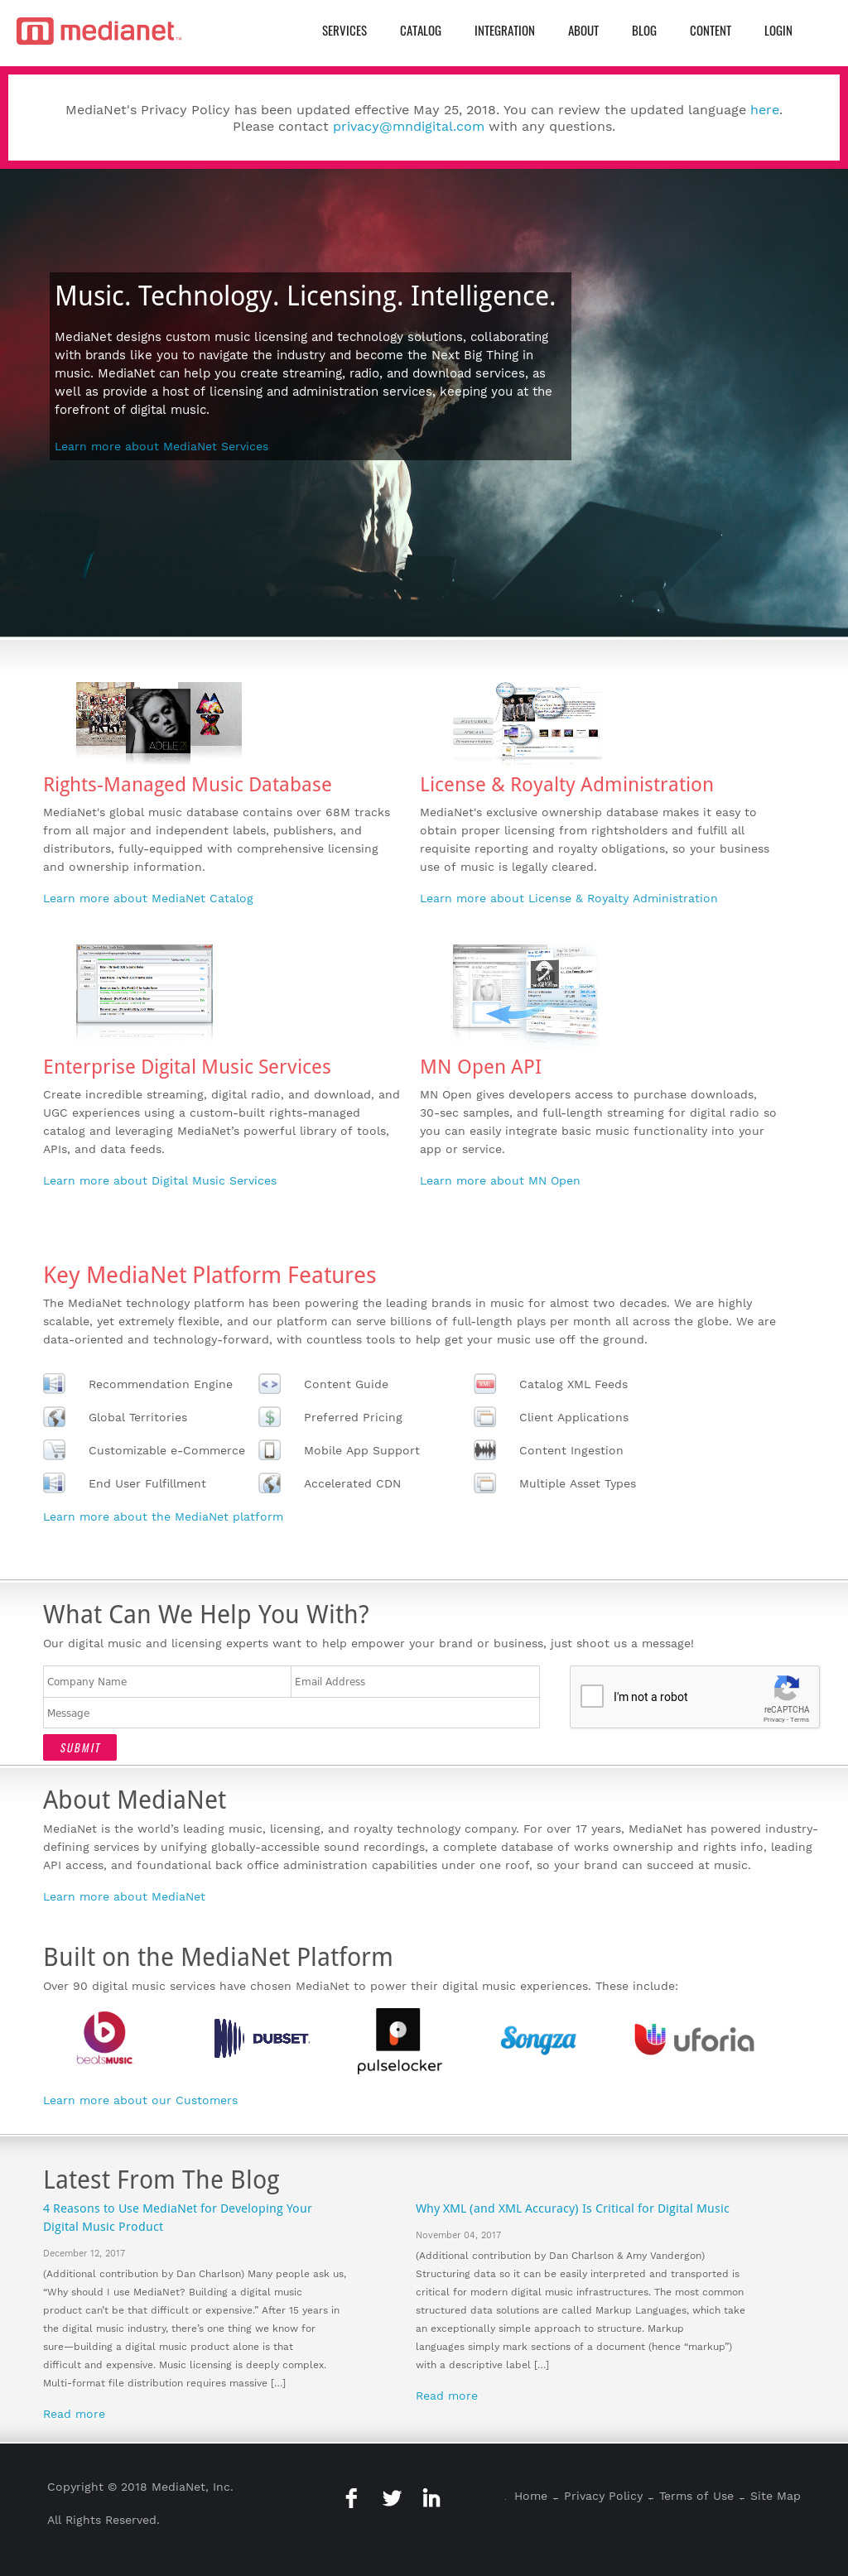 MediaNet Competitors, Revenue and Employees - Owler Company